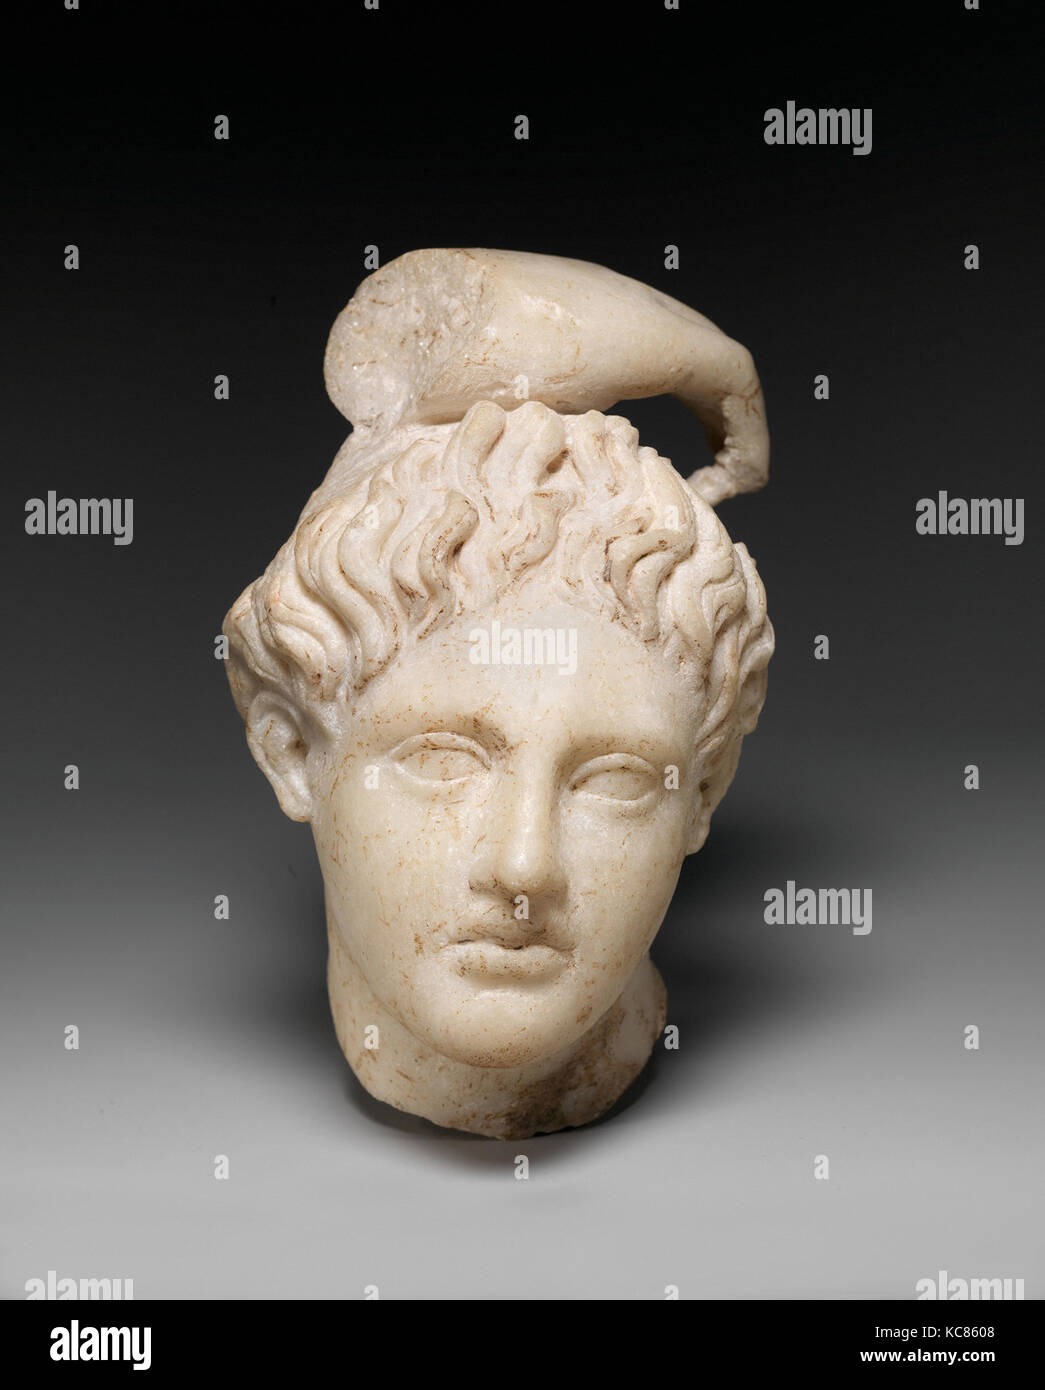 Marble head of Apollo with fragment of his hand, 1st or 2nd century A.D - Stock Image